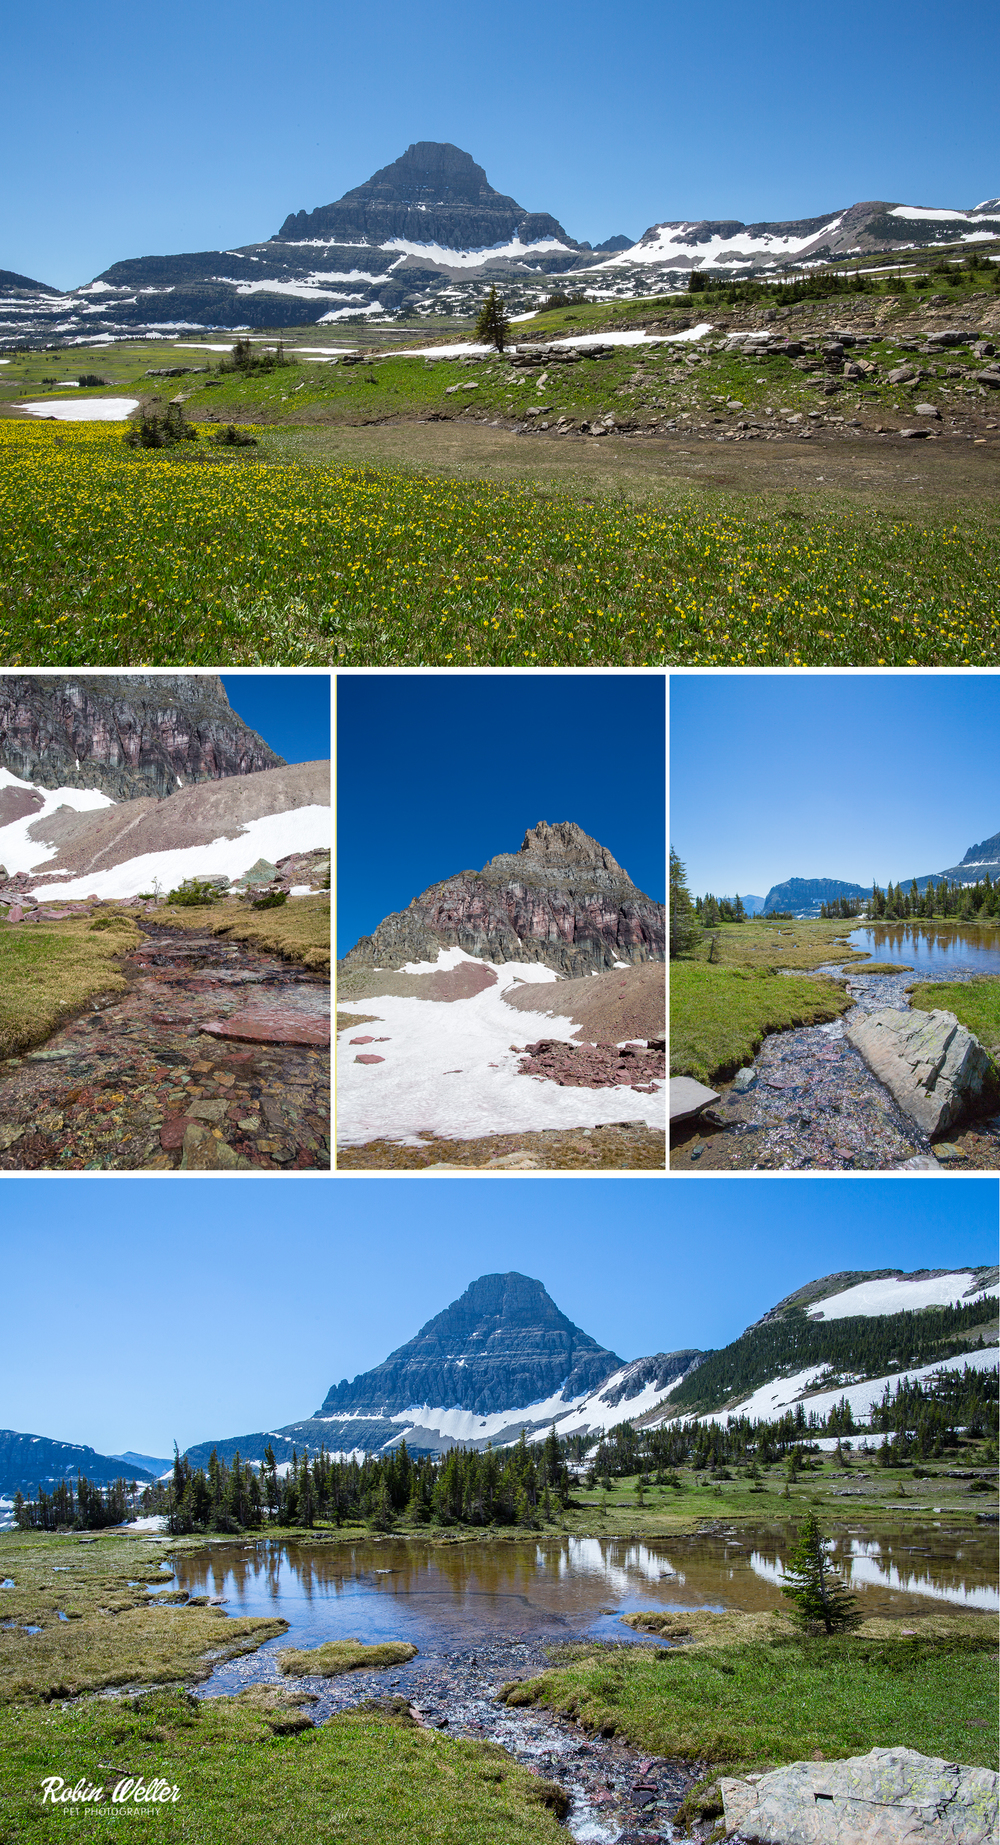 Trail to Hidden Lake, Glacier National Park | ©2015 Robin Welter Photography